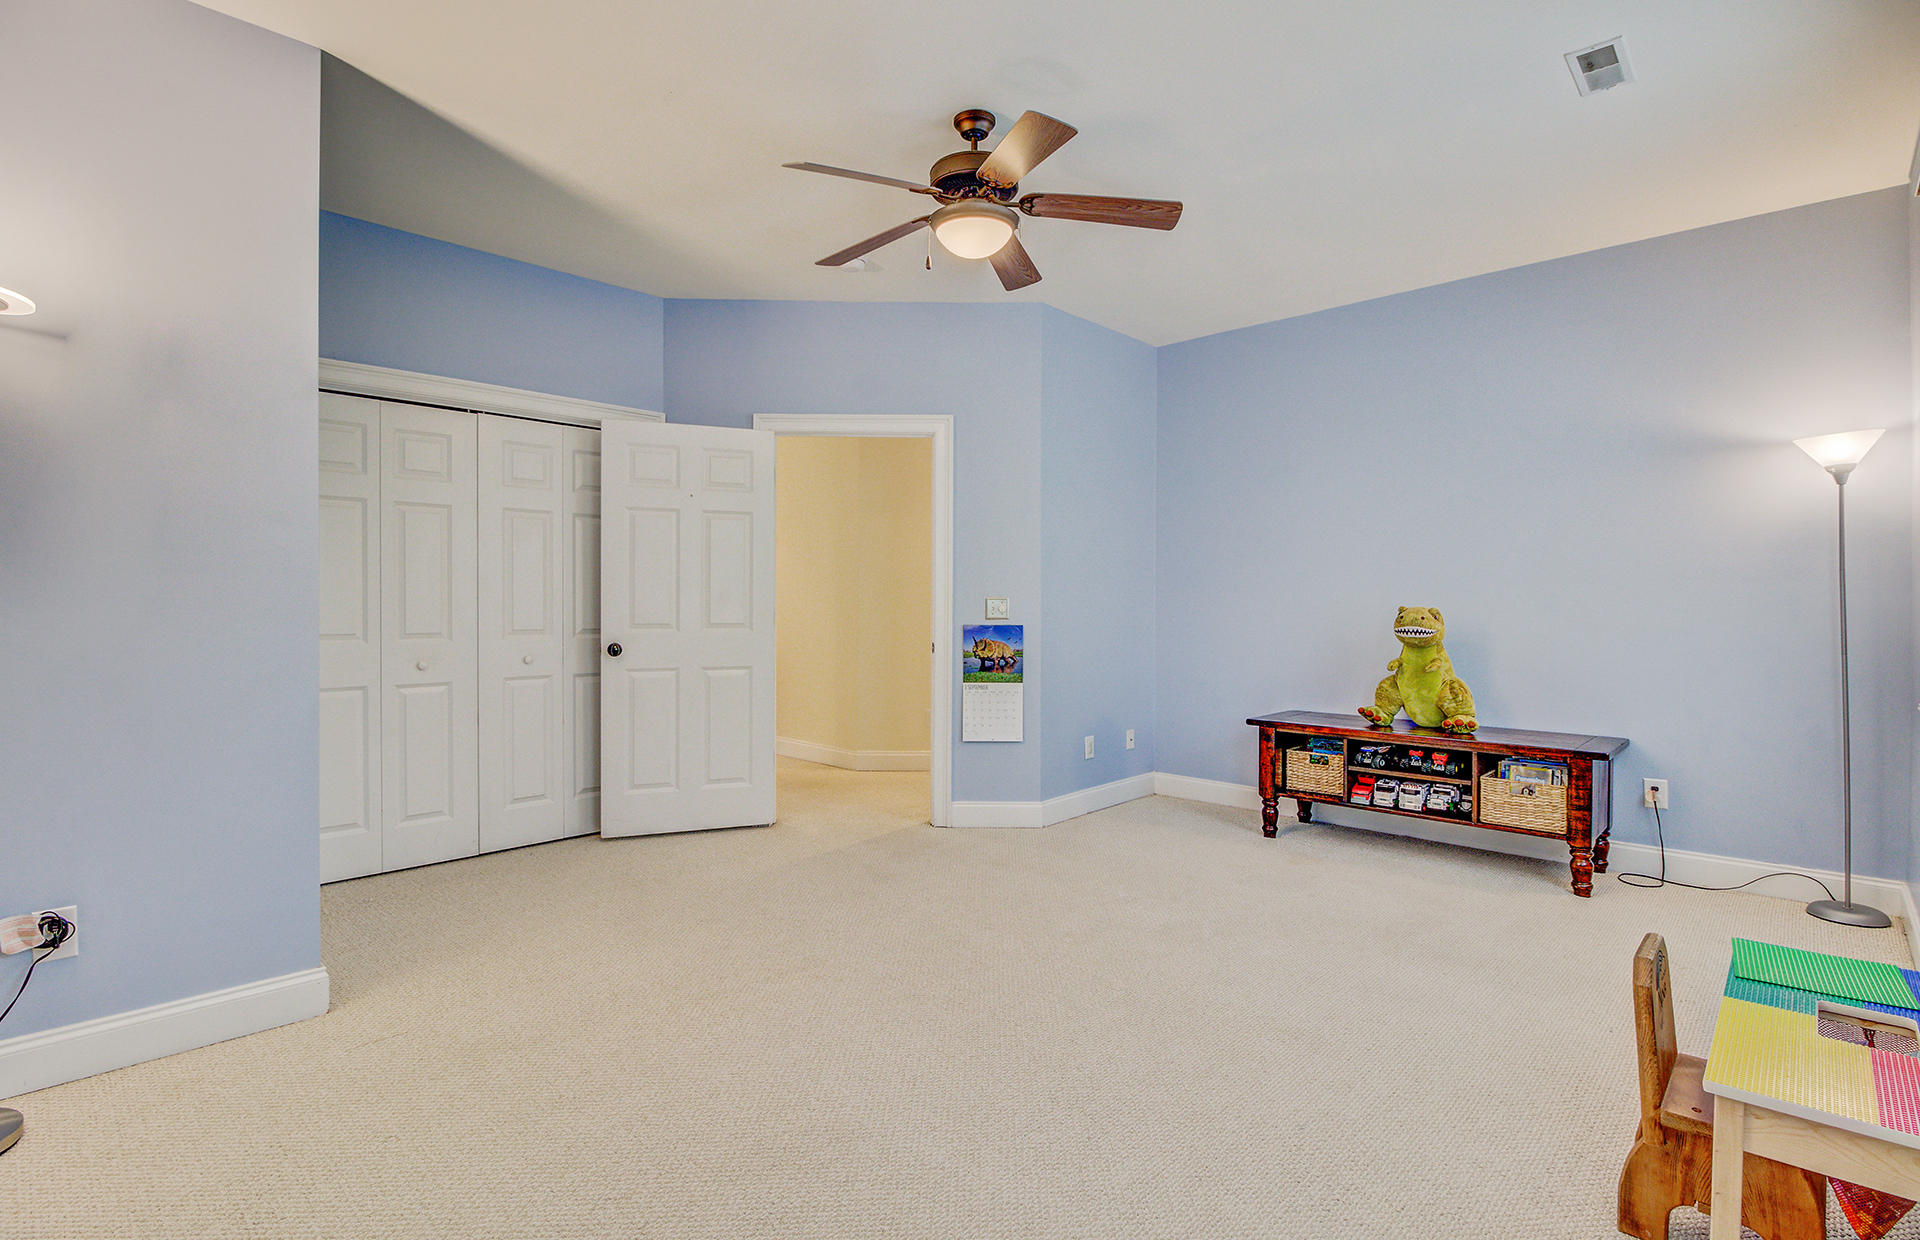 The Villages In St Johns Woods Homes For Sale - 5032 Coral Reef, Johns Island, SC - 13